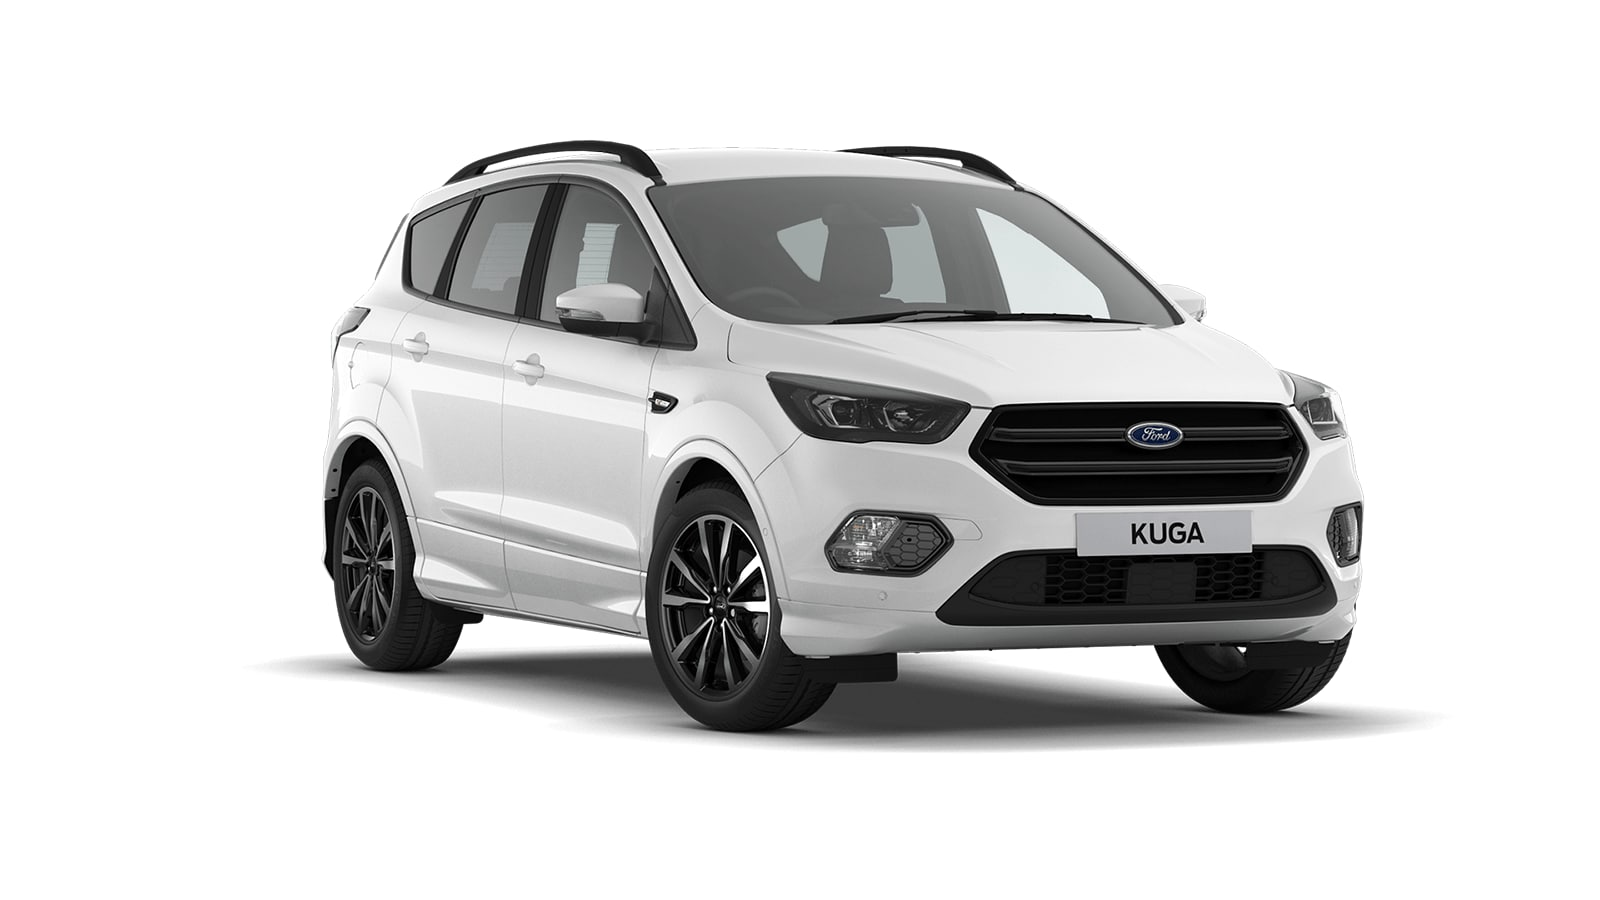 Ford Kuga ST-Line 2.0L TDCi 150PS at Browne & Day